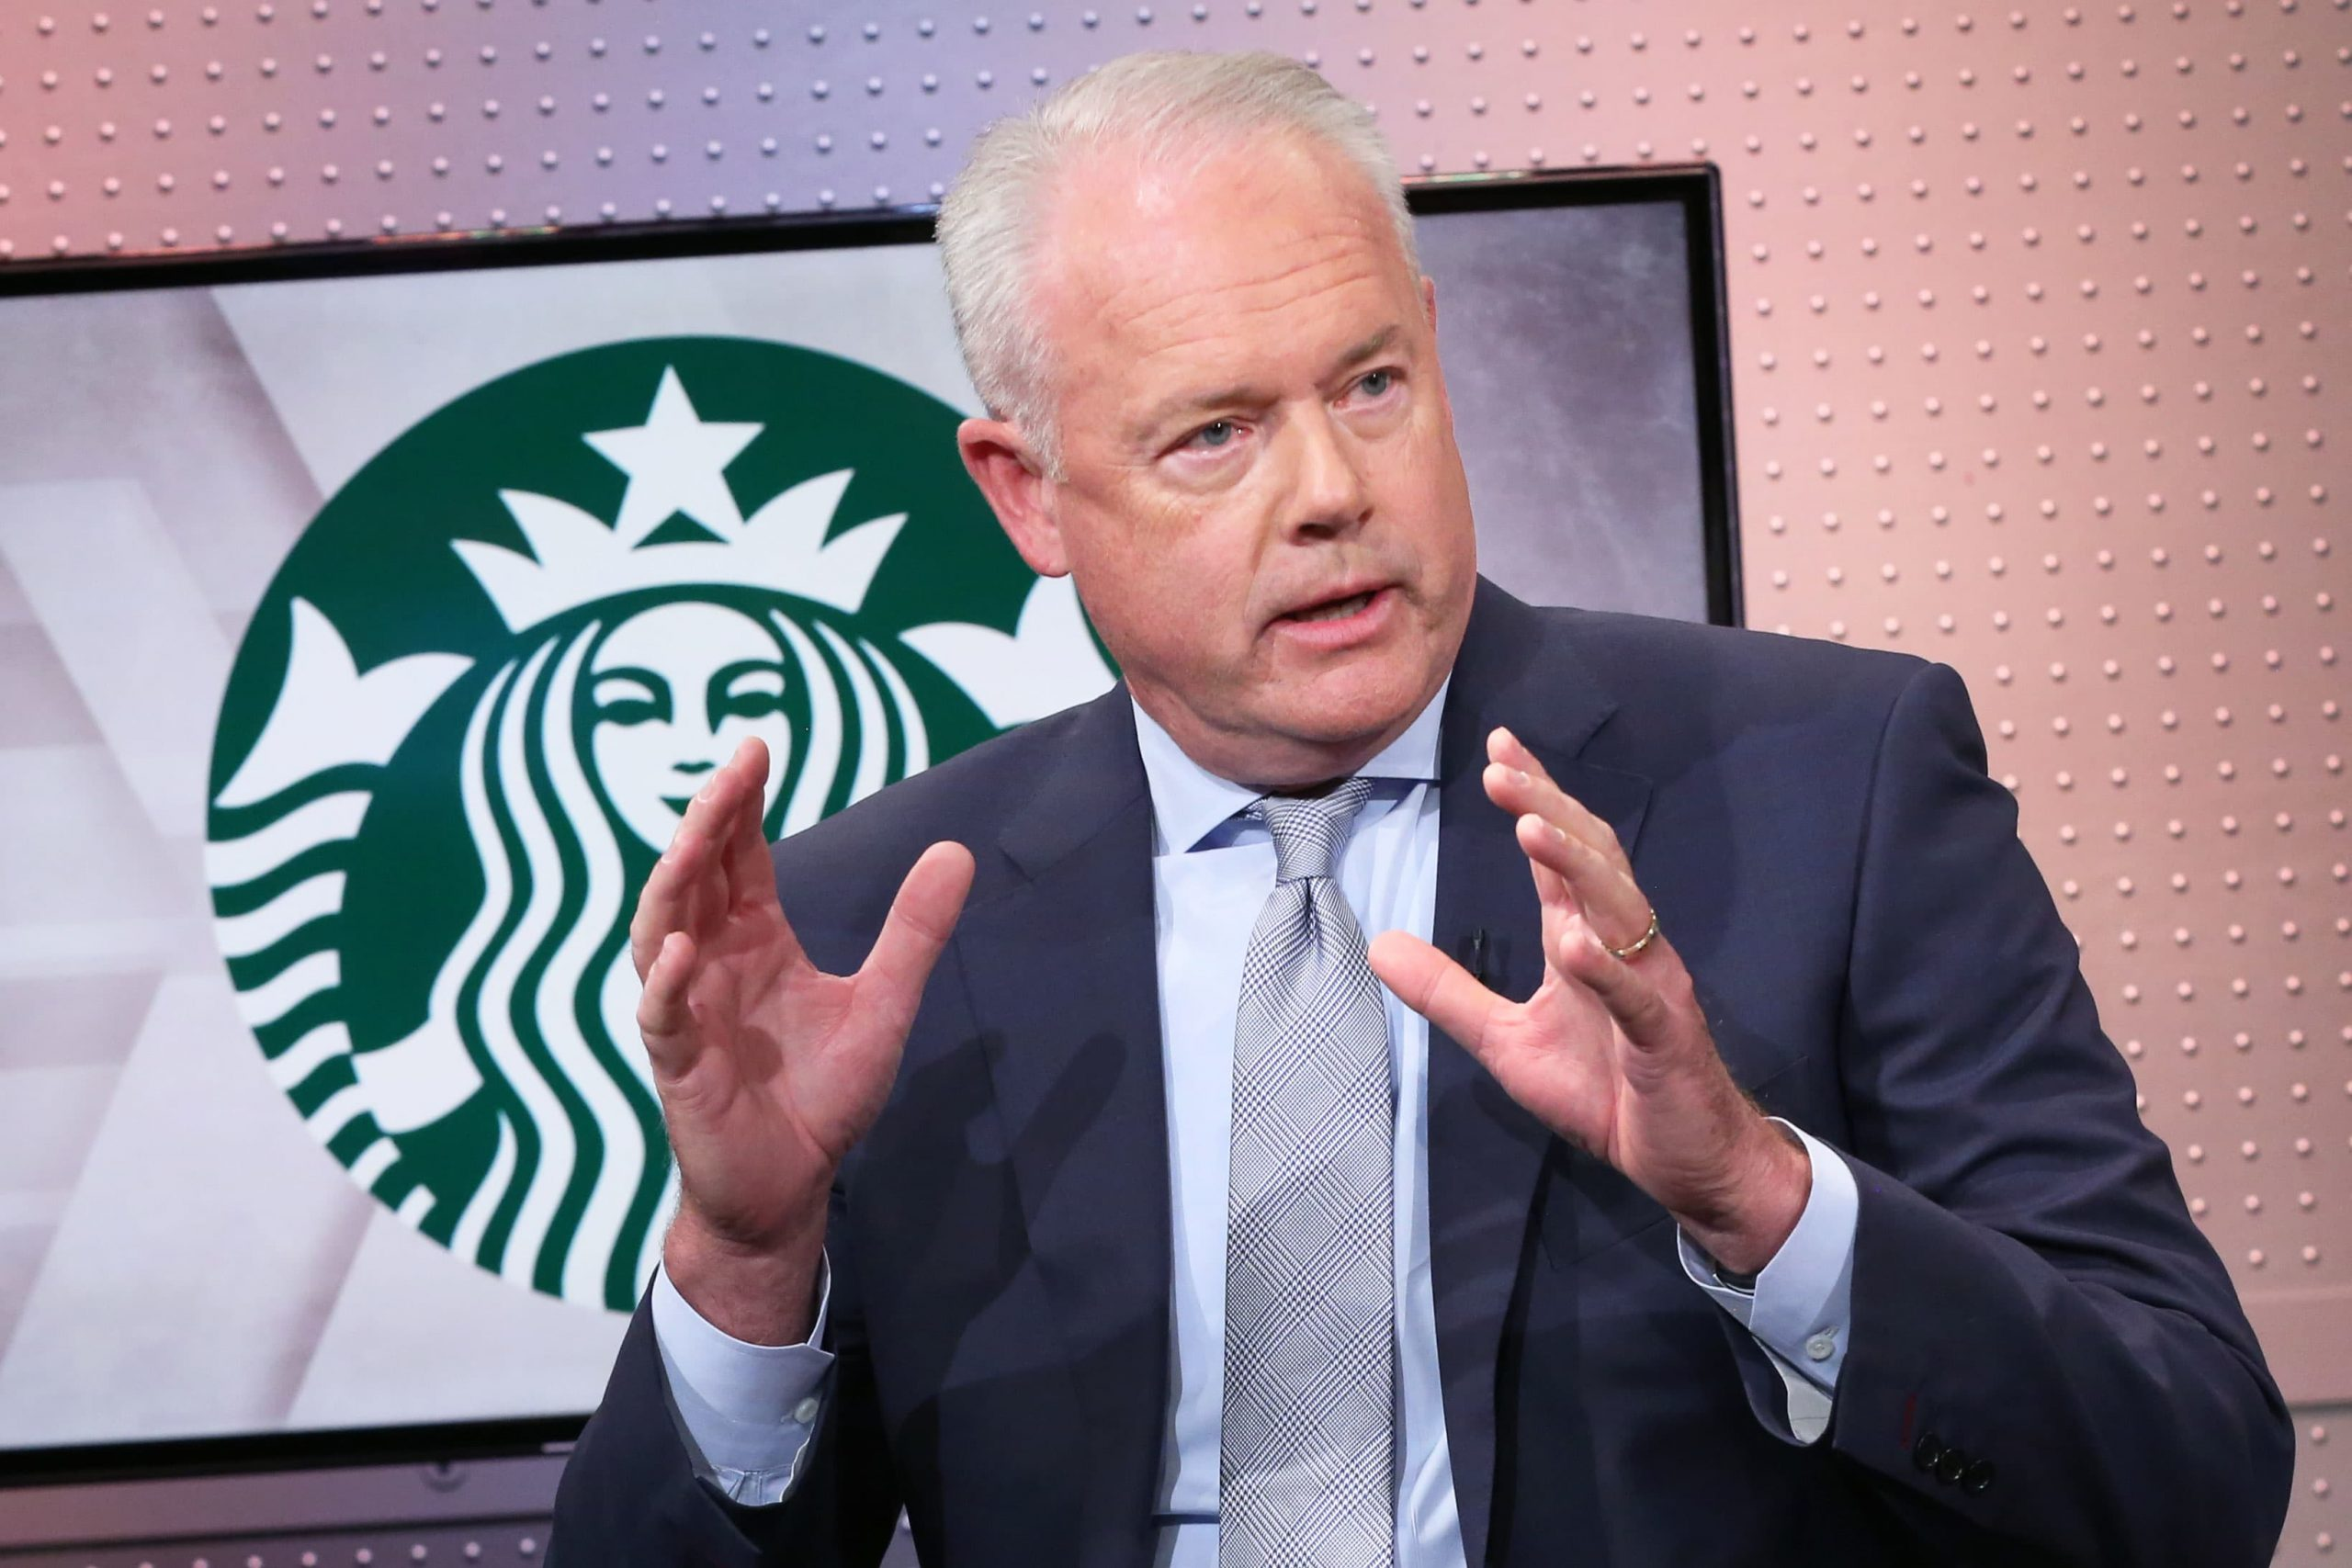 Starbucks CEO says business is rebounding in markets where vaccinations are up